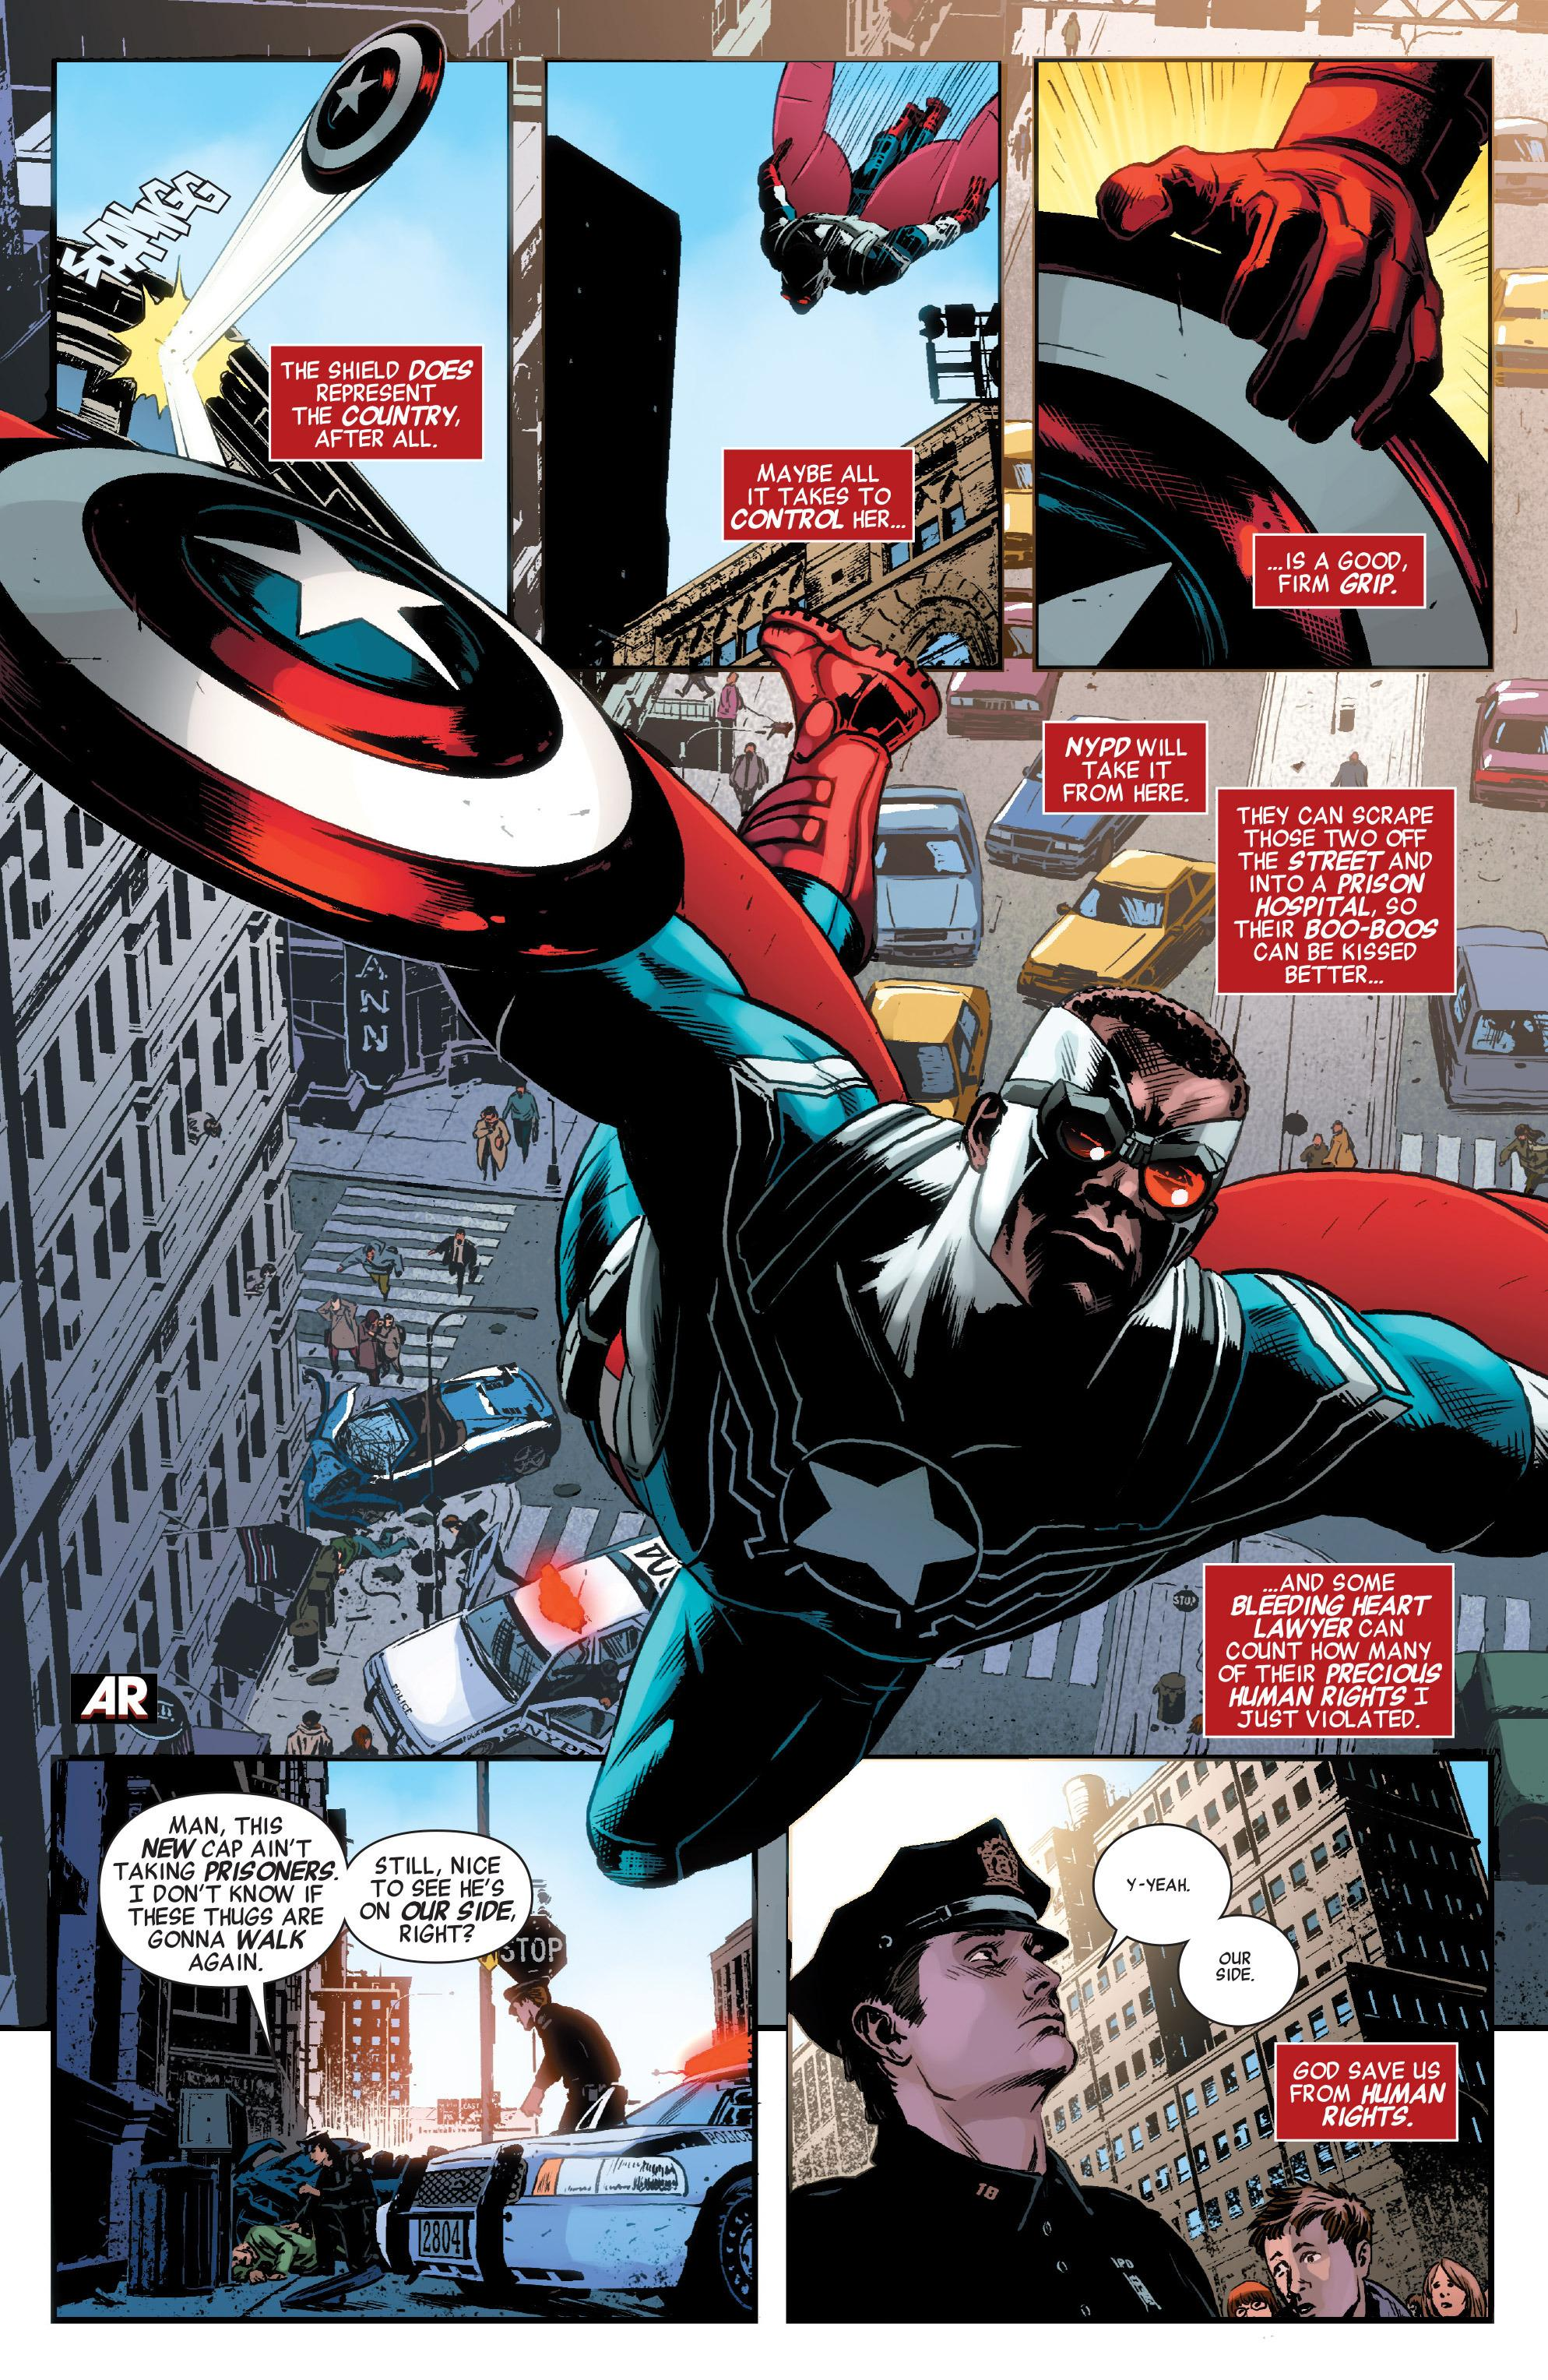 Captain America and the Mighty Avengers Open For Business review